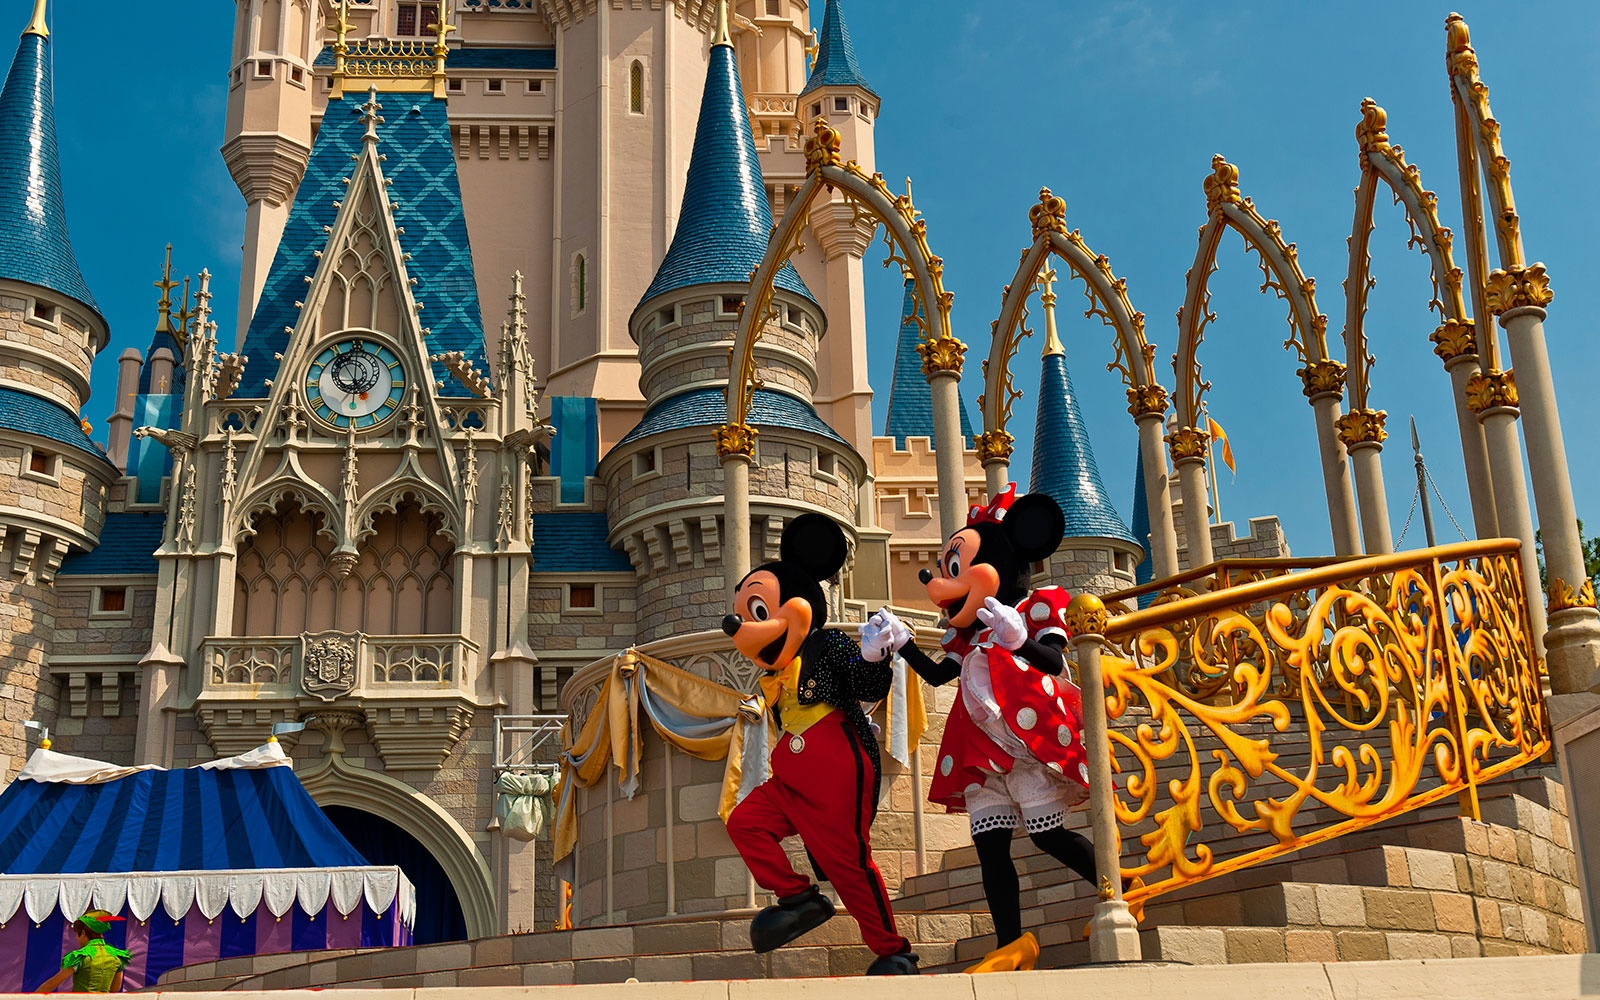 Disney's U.S. Parks to Change Their Pricing for the First Time in 60 Years